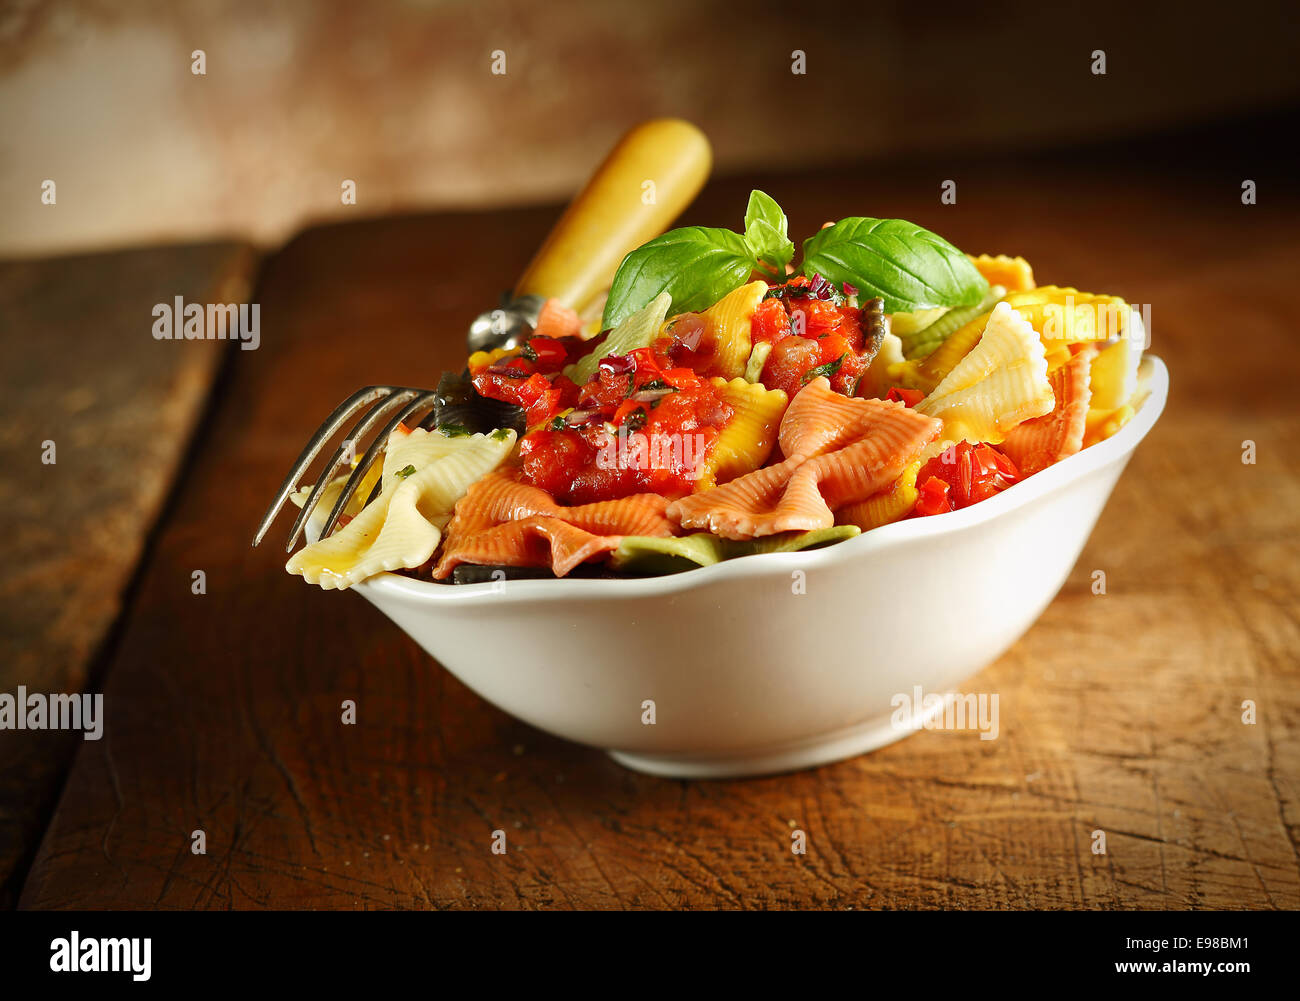 Delicious colourful Italian bow tie pasta served with tomato and basil in a white ceramic dish with a fork on an - Stock Image